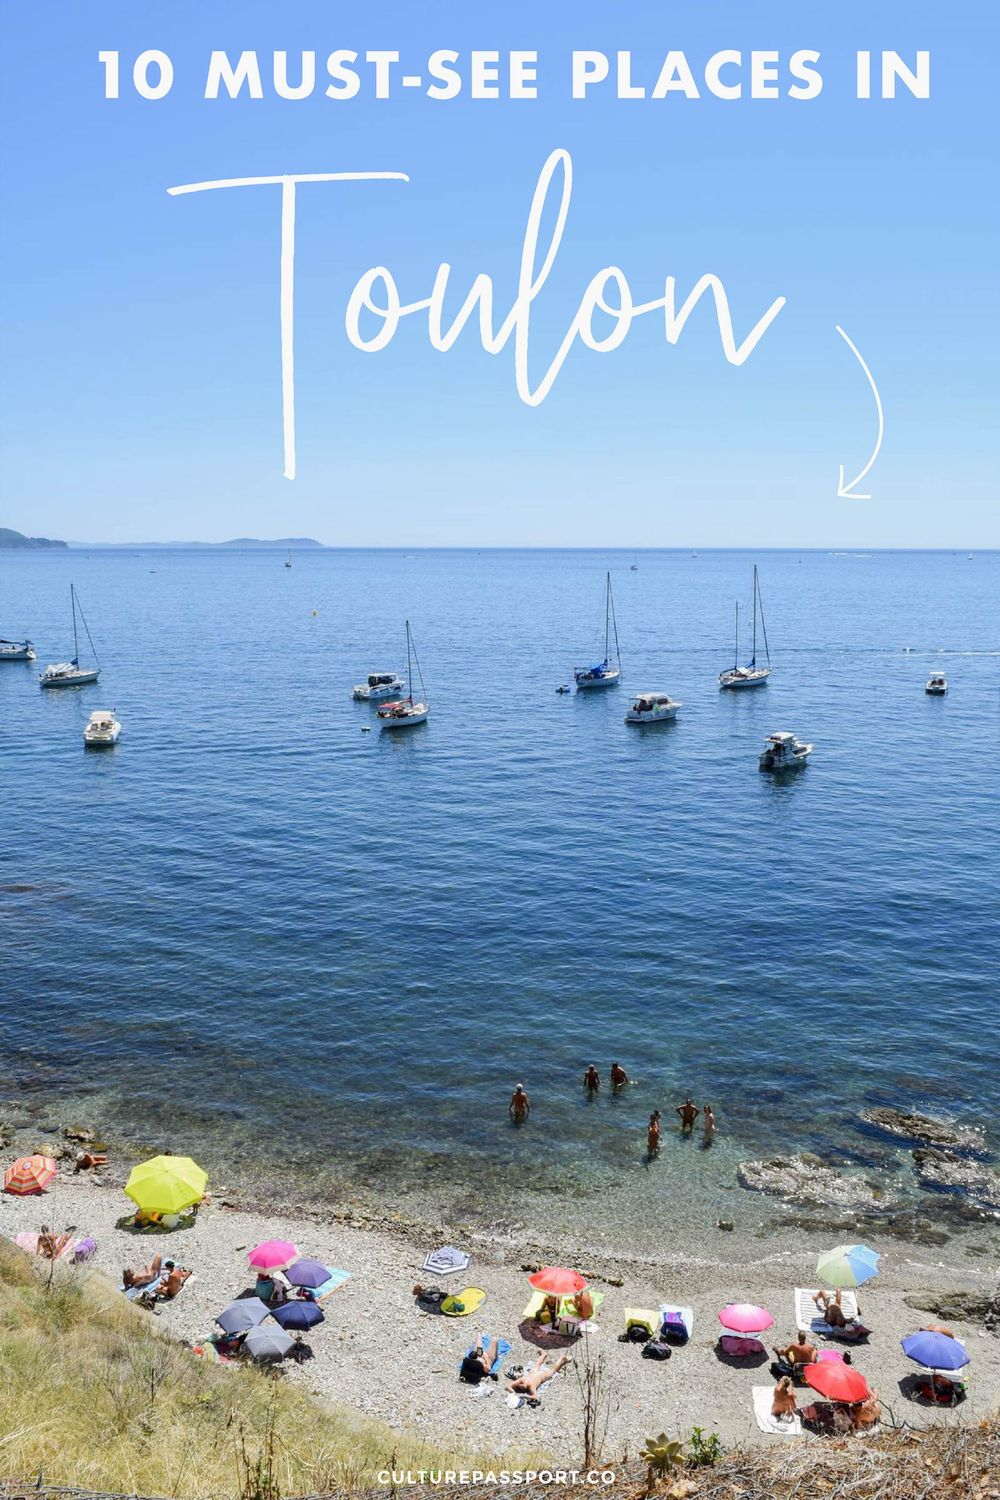 10 Must See Places Toulon, France!